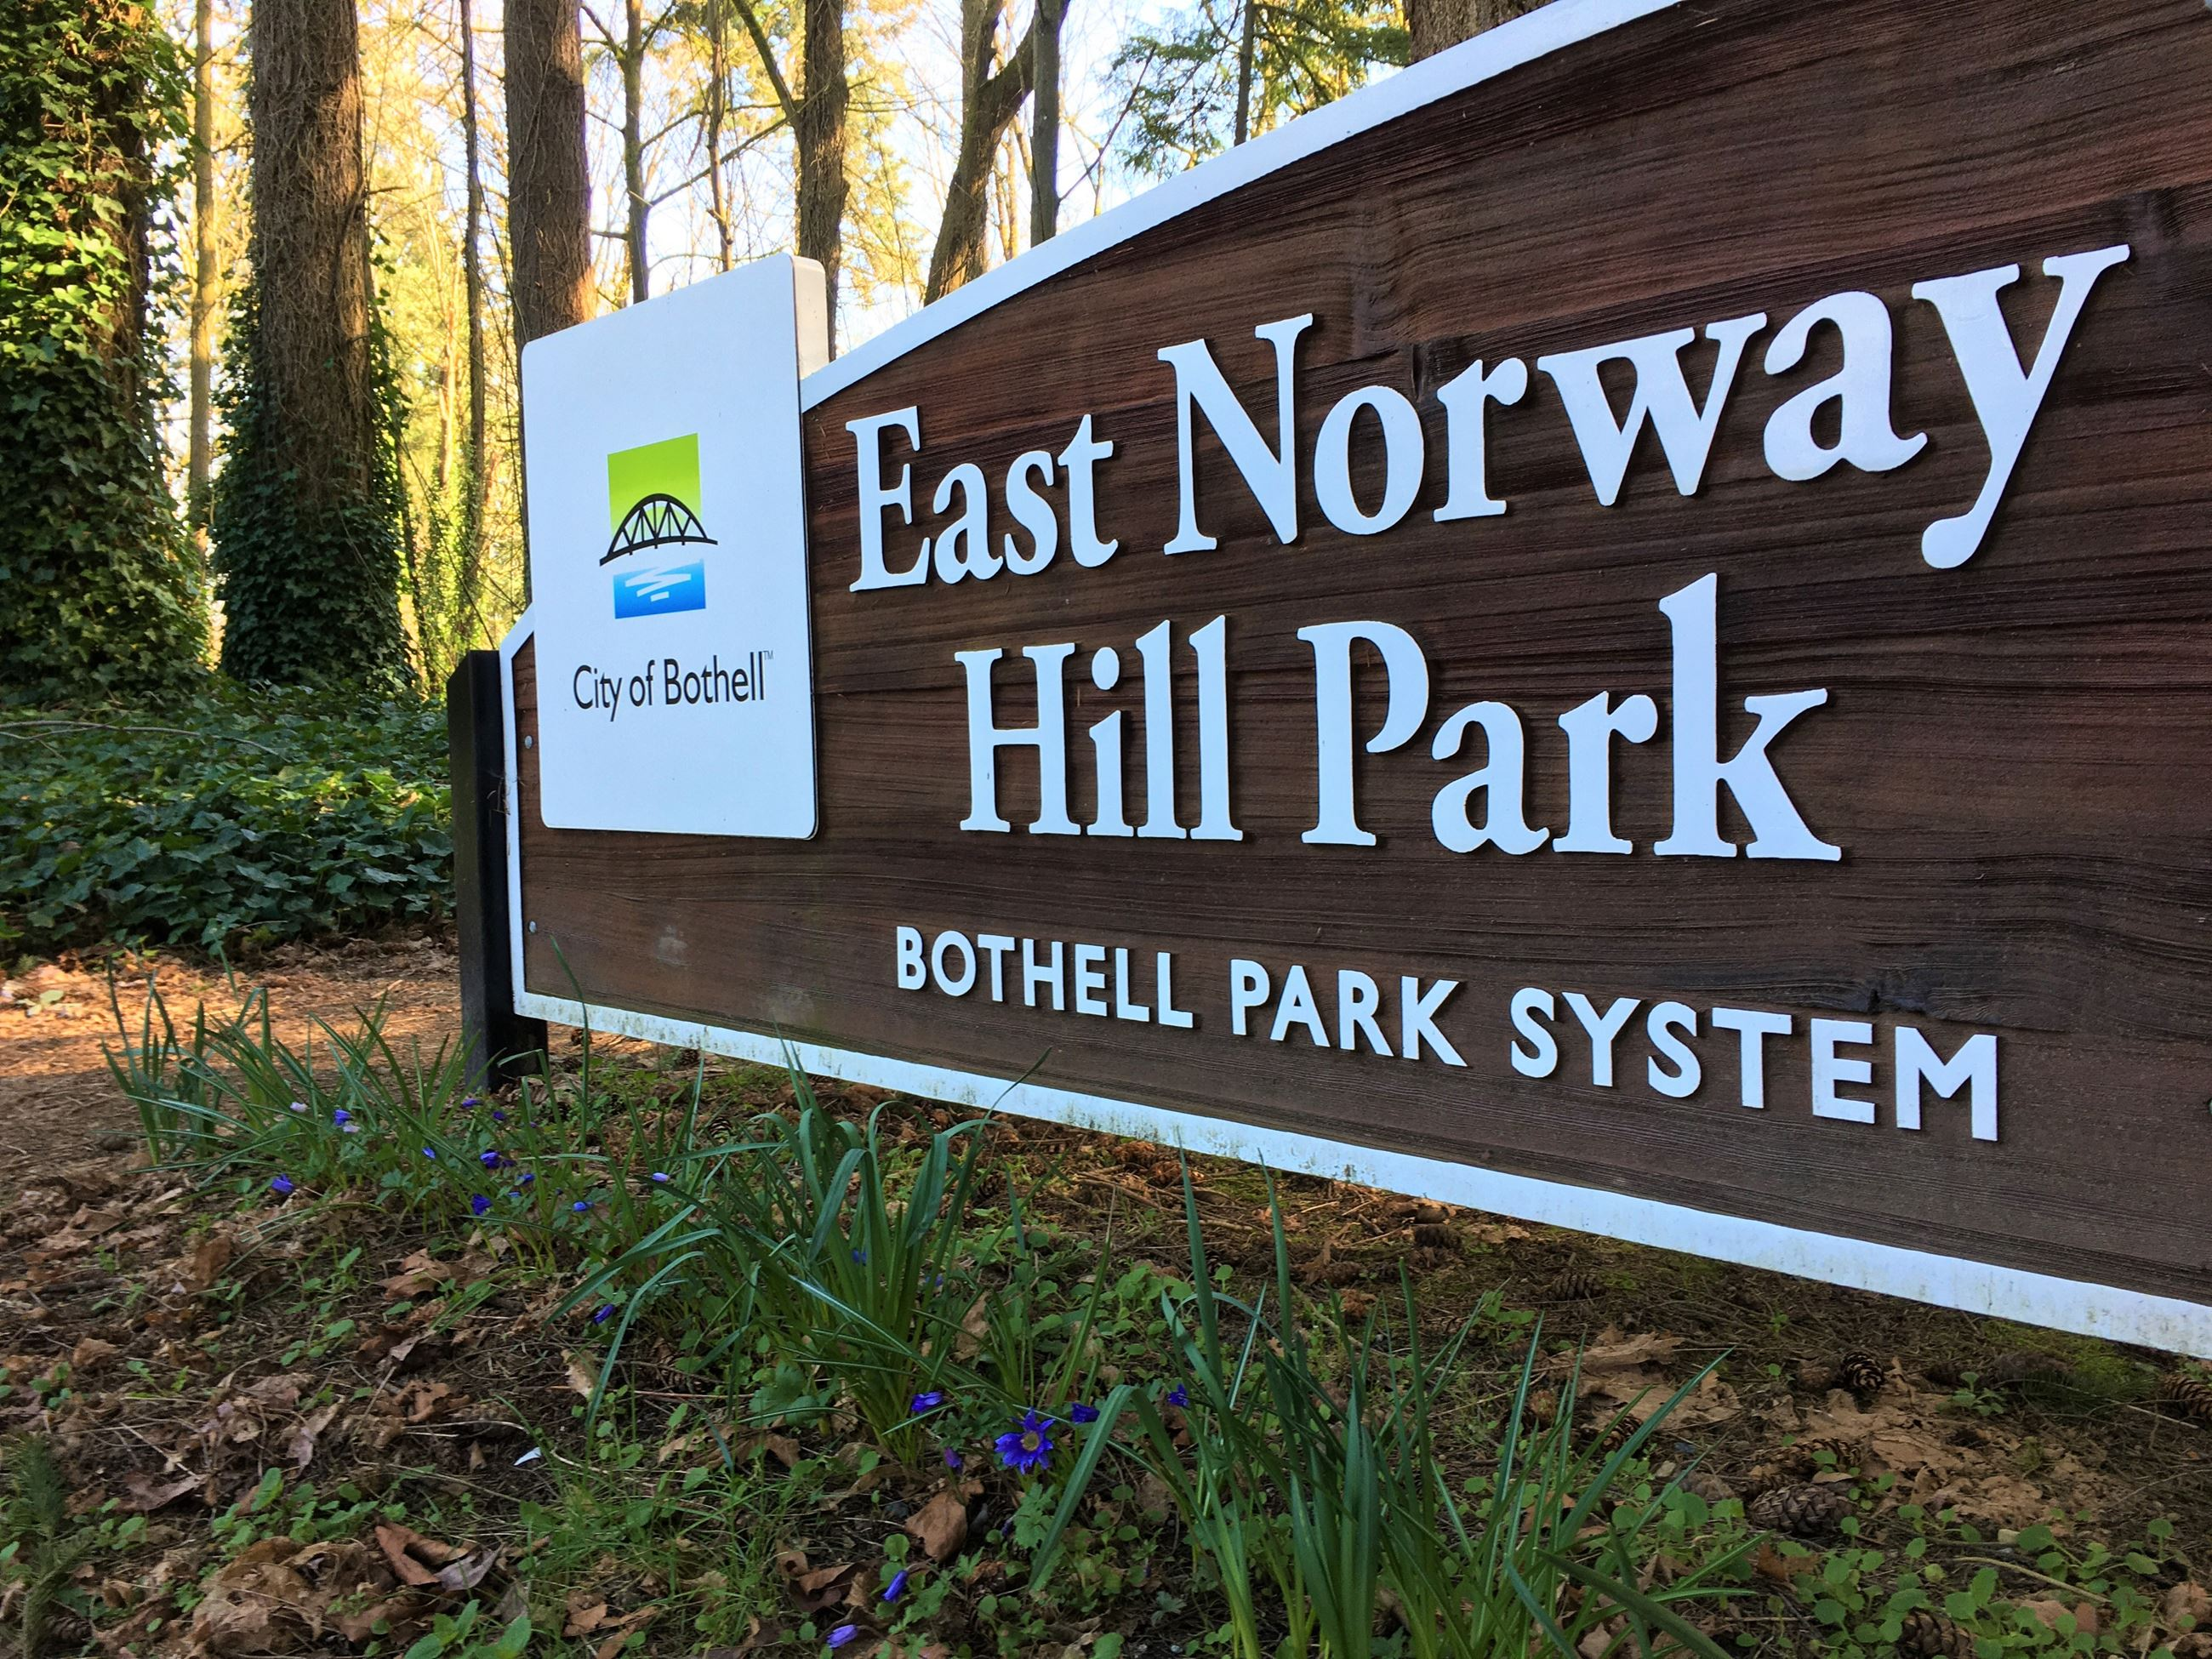 East Norway Hill Park sign